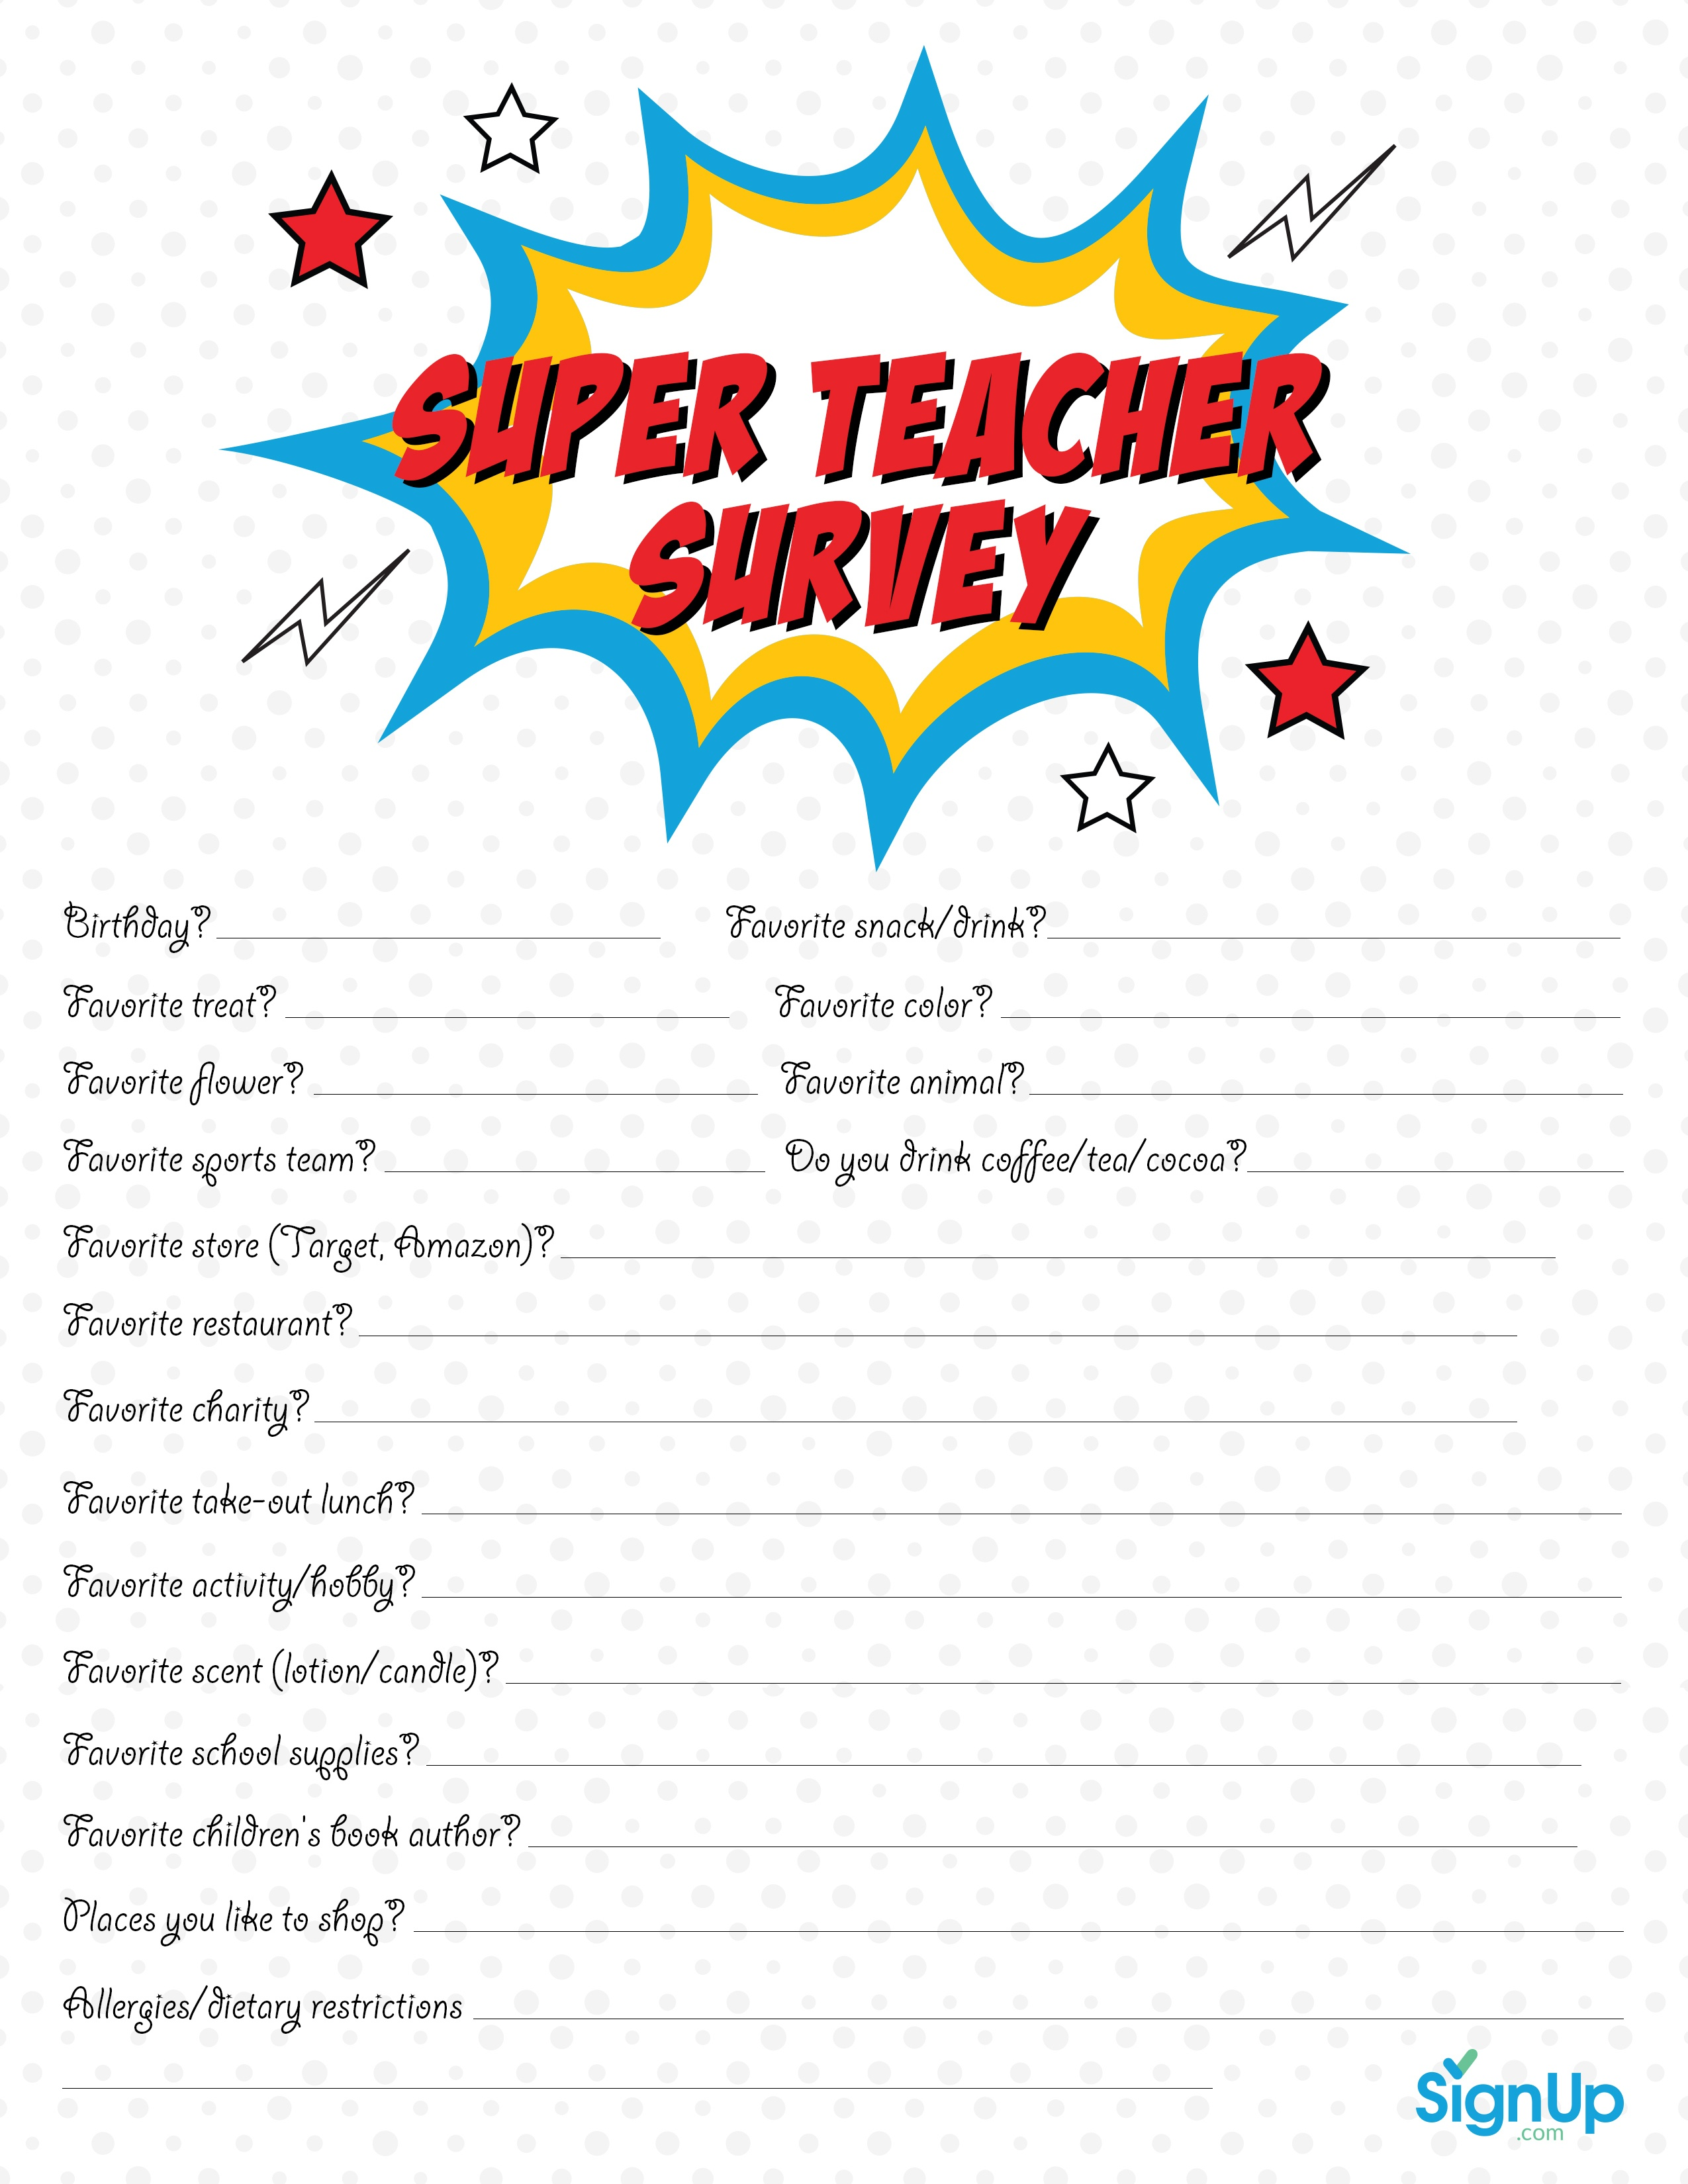 Teacher Survey: Free Downloadable Room Parent Resource | Signup - Make A Printable Survey Free